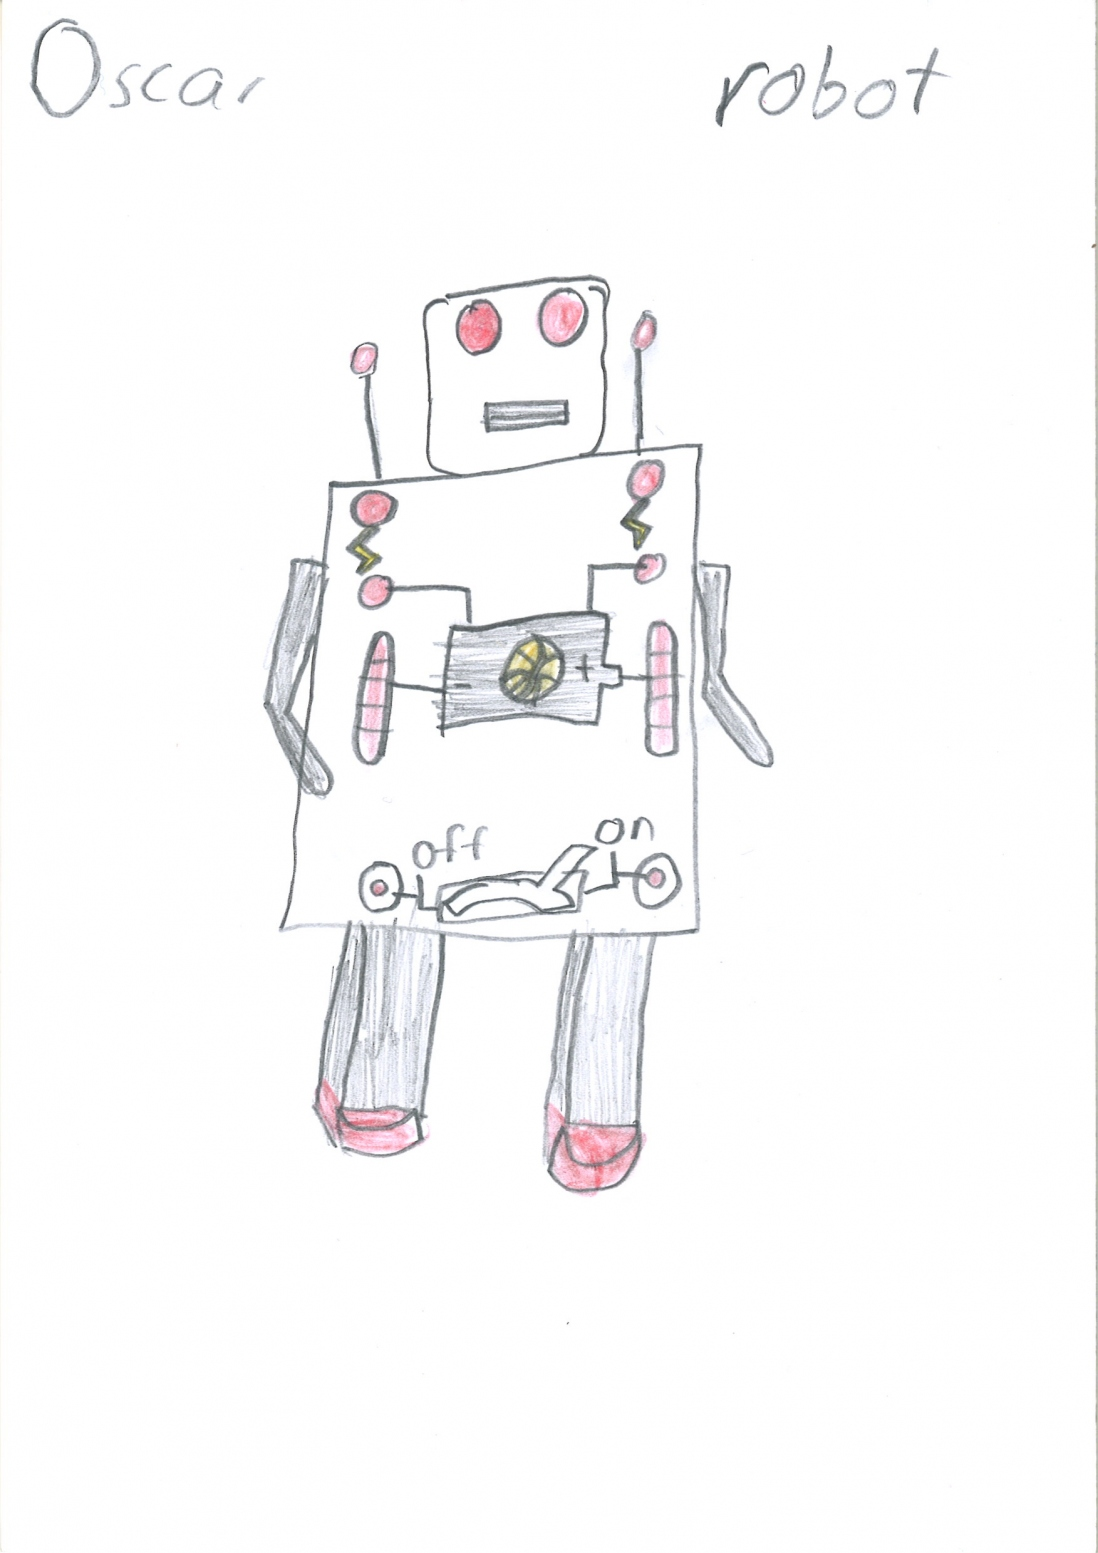 A child's drawing of a robot with red eyes